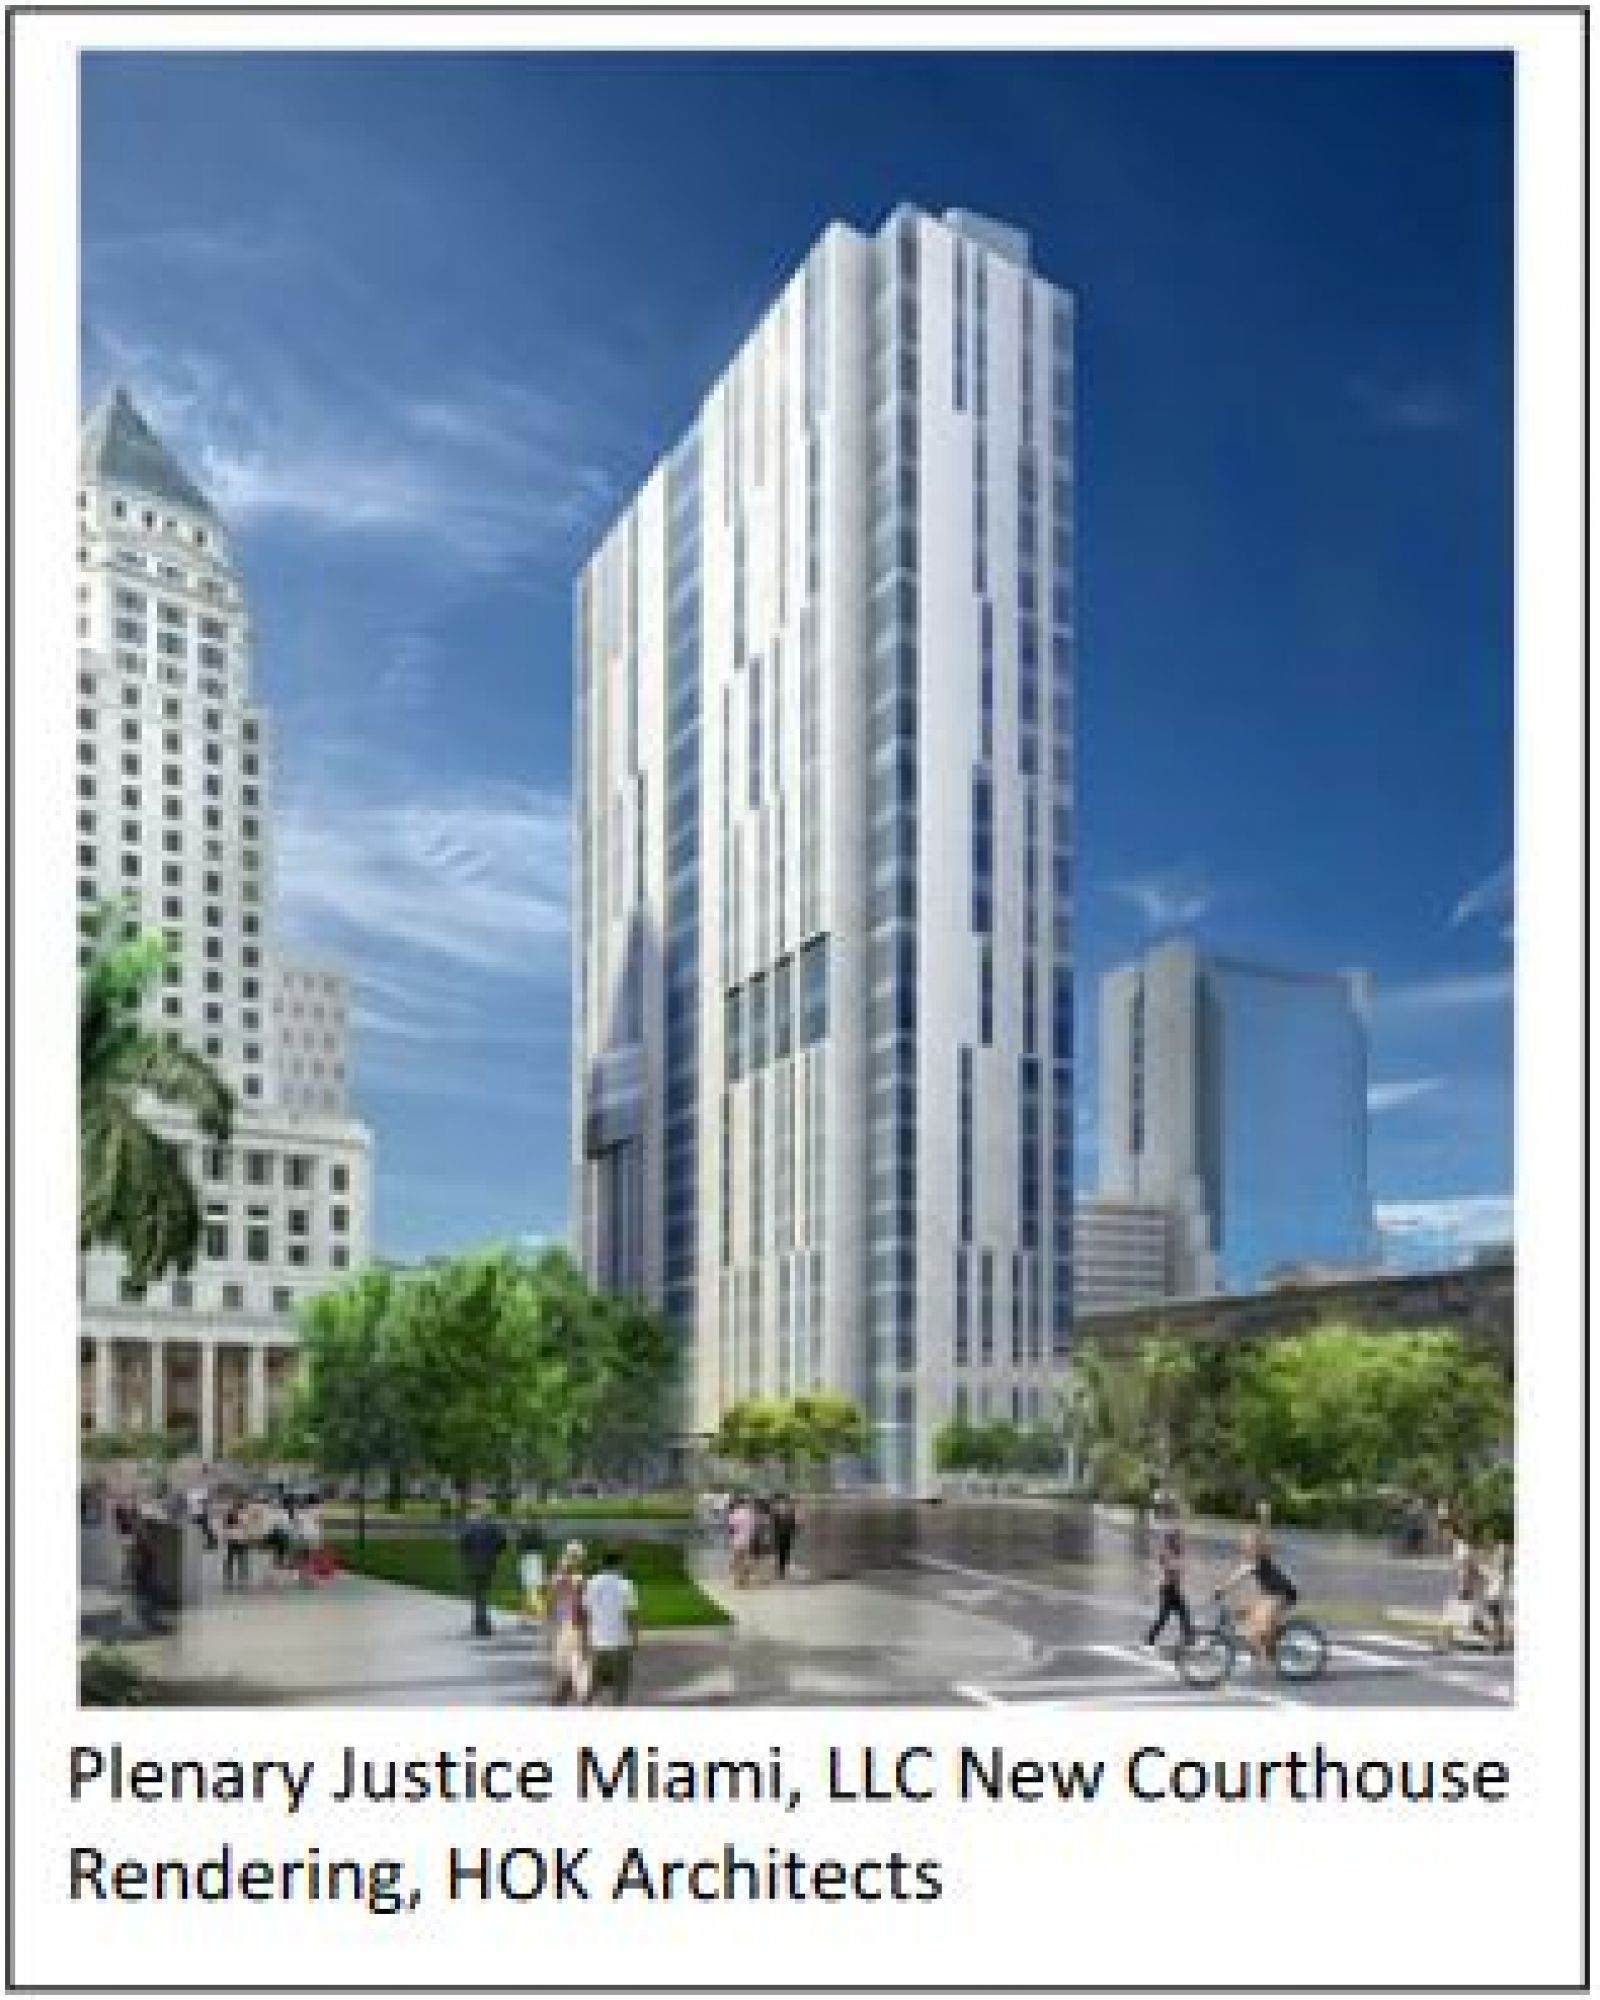 New Courthouse Miami-Dade County Rendering banner image